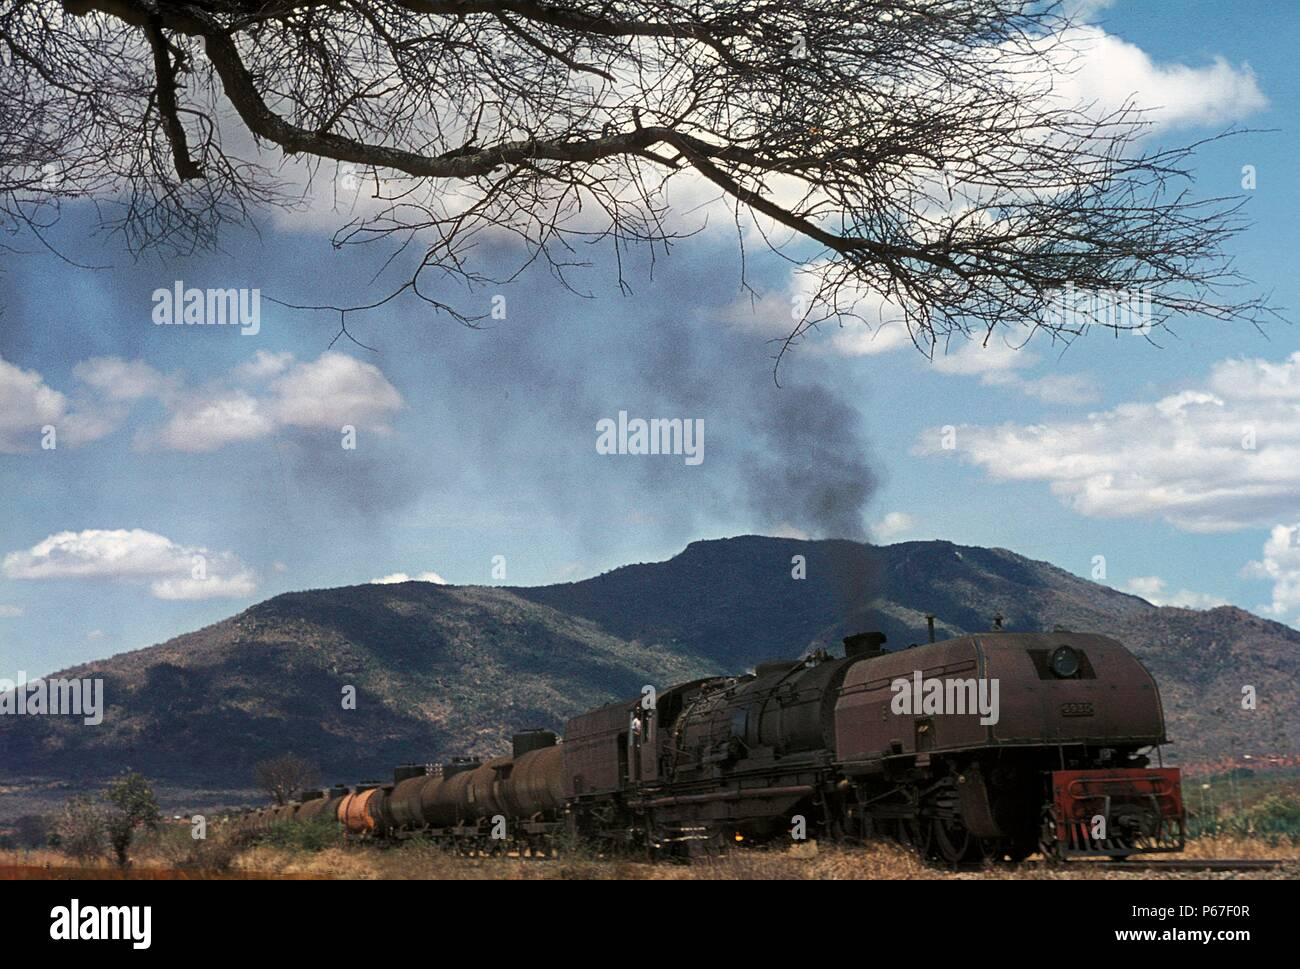 Big game at Voi. These East African Railway's Mountain Class Garratt 2-8-4 + 4-8-2 were one of the world's largest steam types. Built by Beyer Peacock - Stock Image